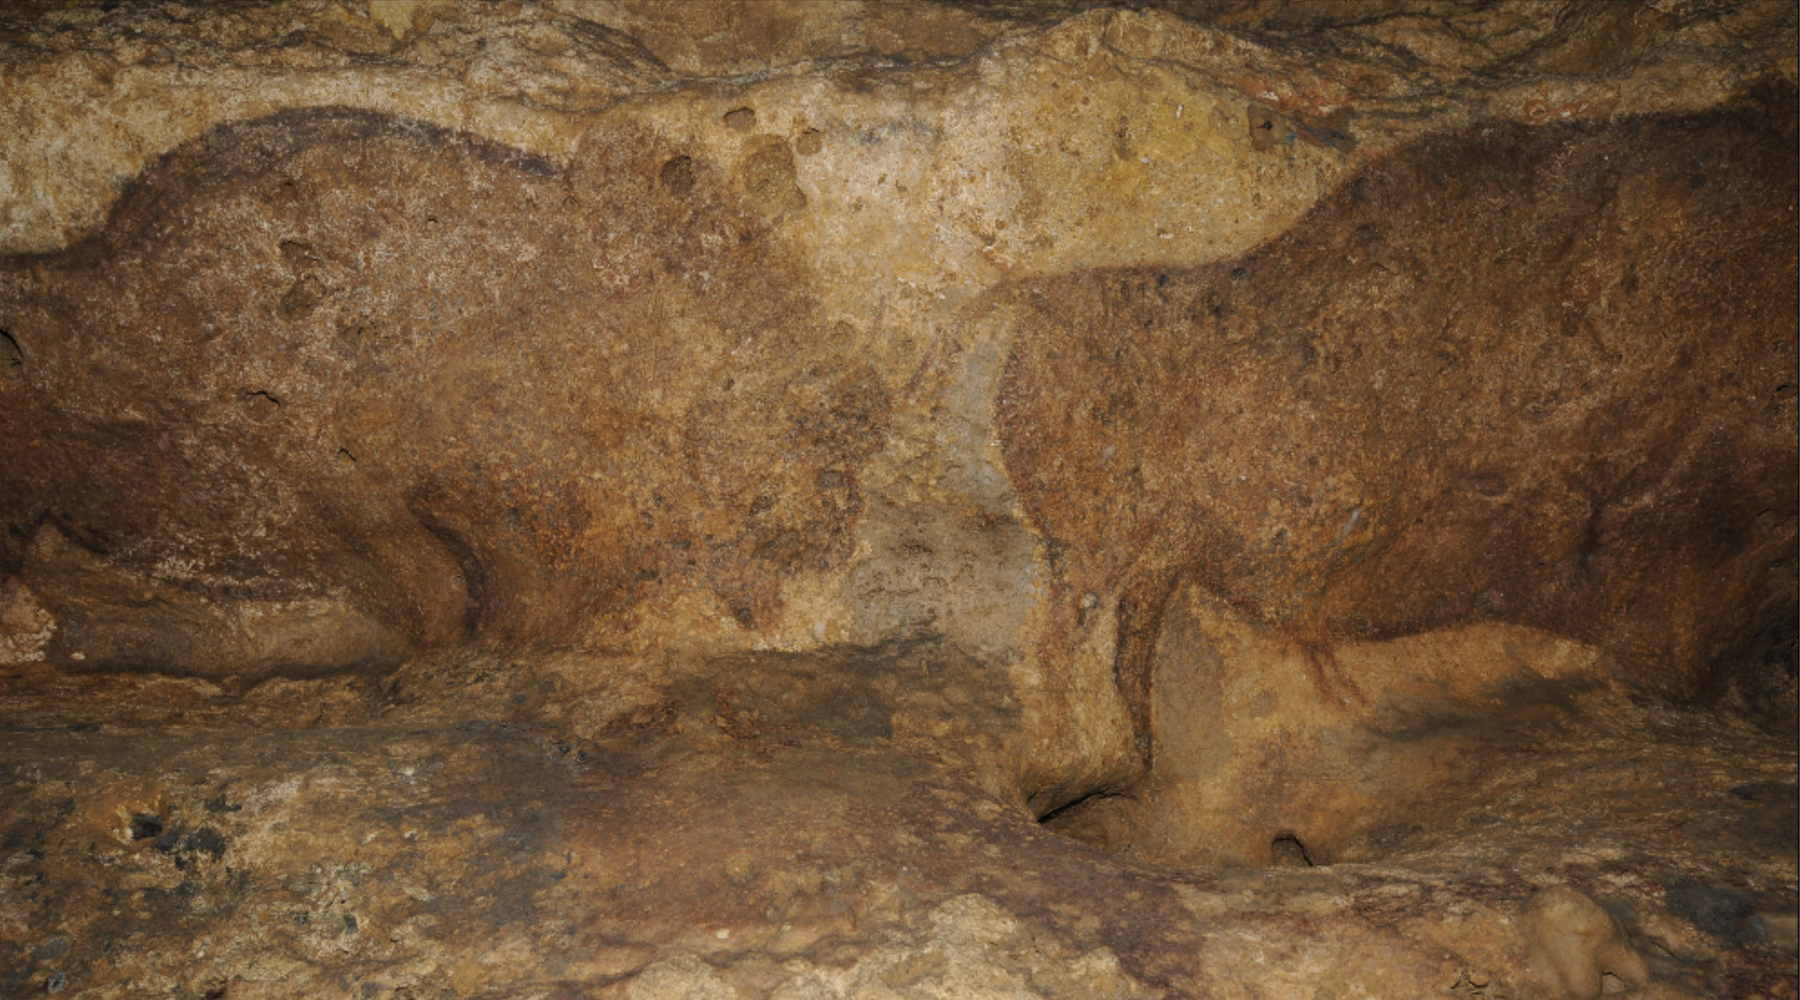 08 The cave of Font-de-Gaume